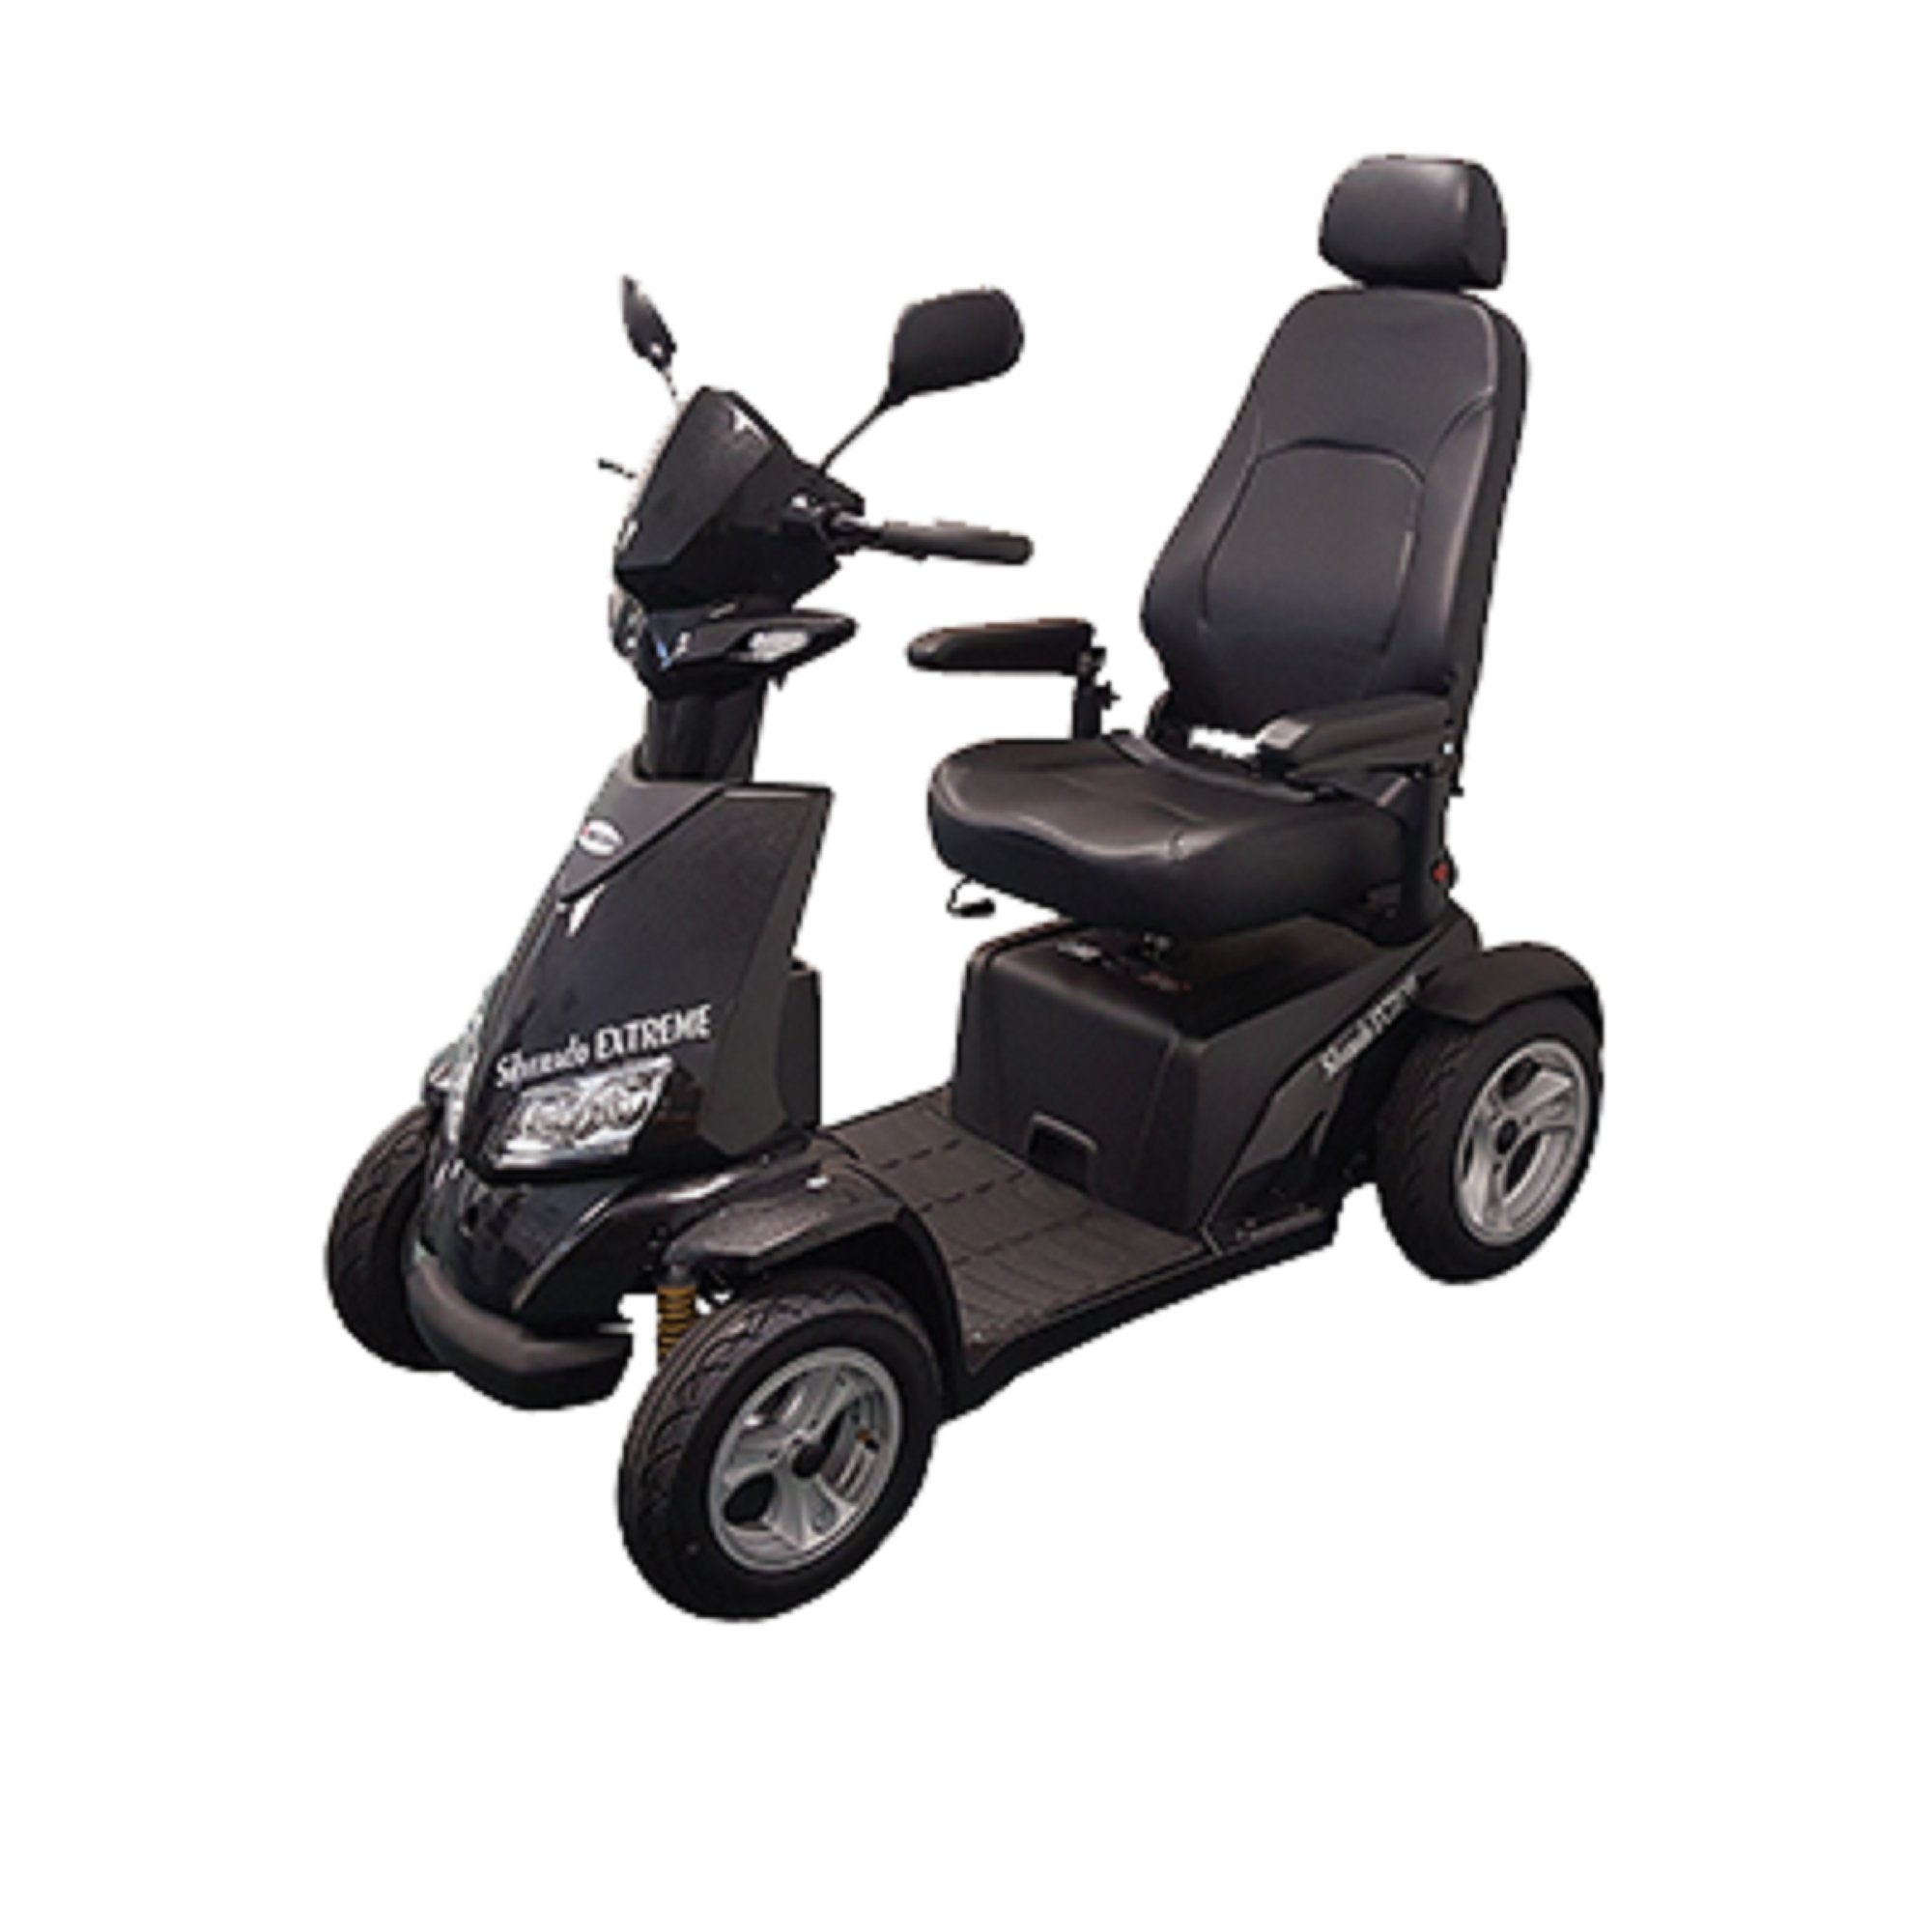 Merits Health Products - Silverado Extreme - 4-Wheel Full Suspension Electric Scooter - 20''W x 18''D - Black